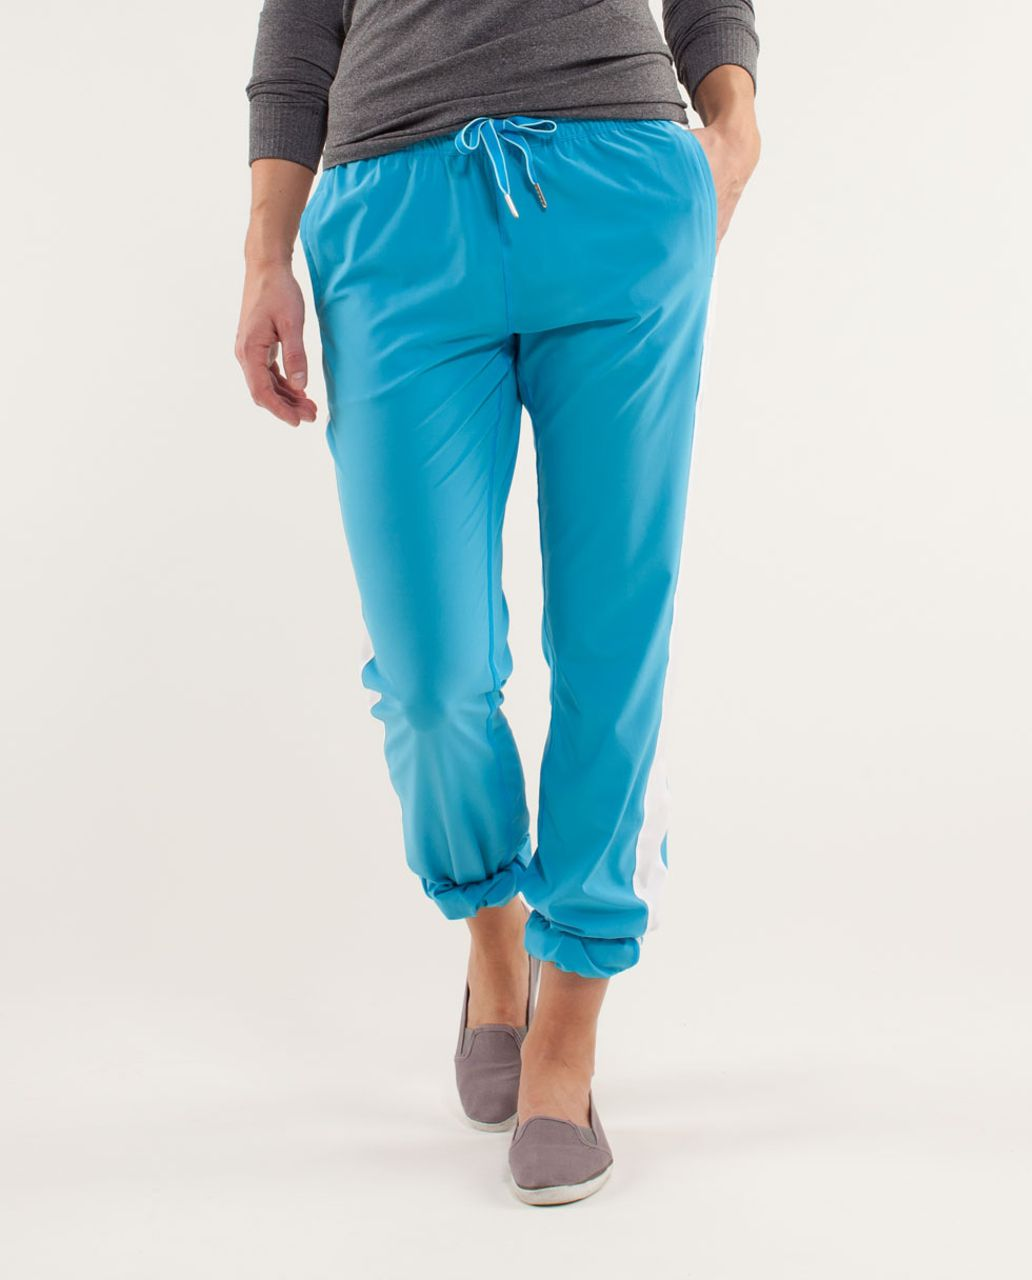 Lululemon Work It Out Track Pant - Kayak Blue / White / Aquamarine